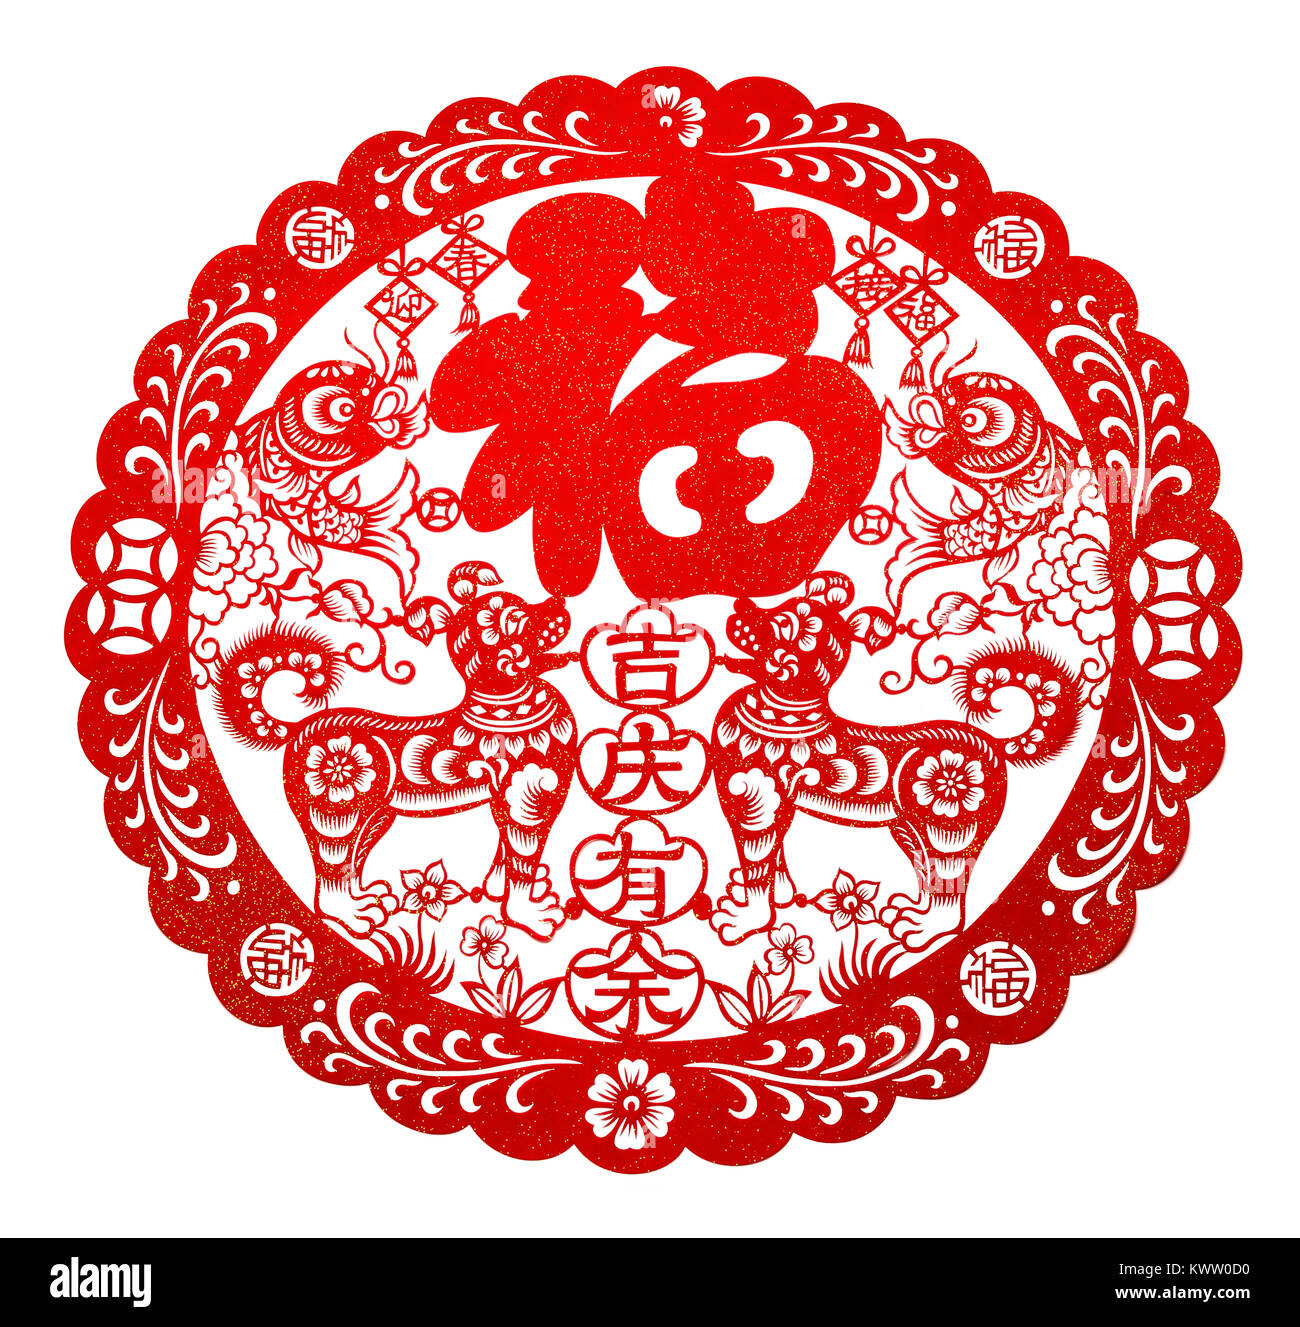 Red Flat Paper Cut On White As A Symbol Of Chinese New Year Of The